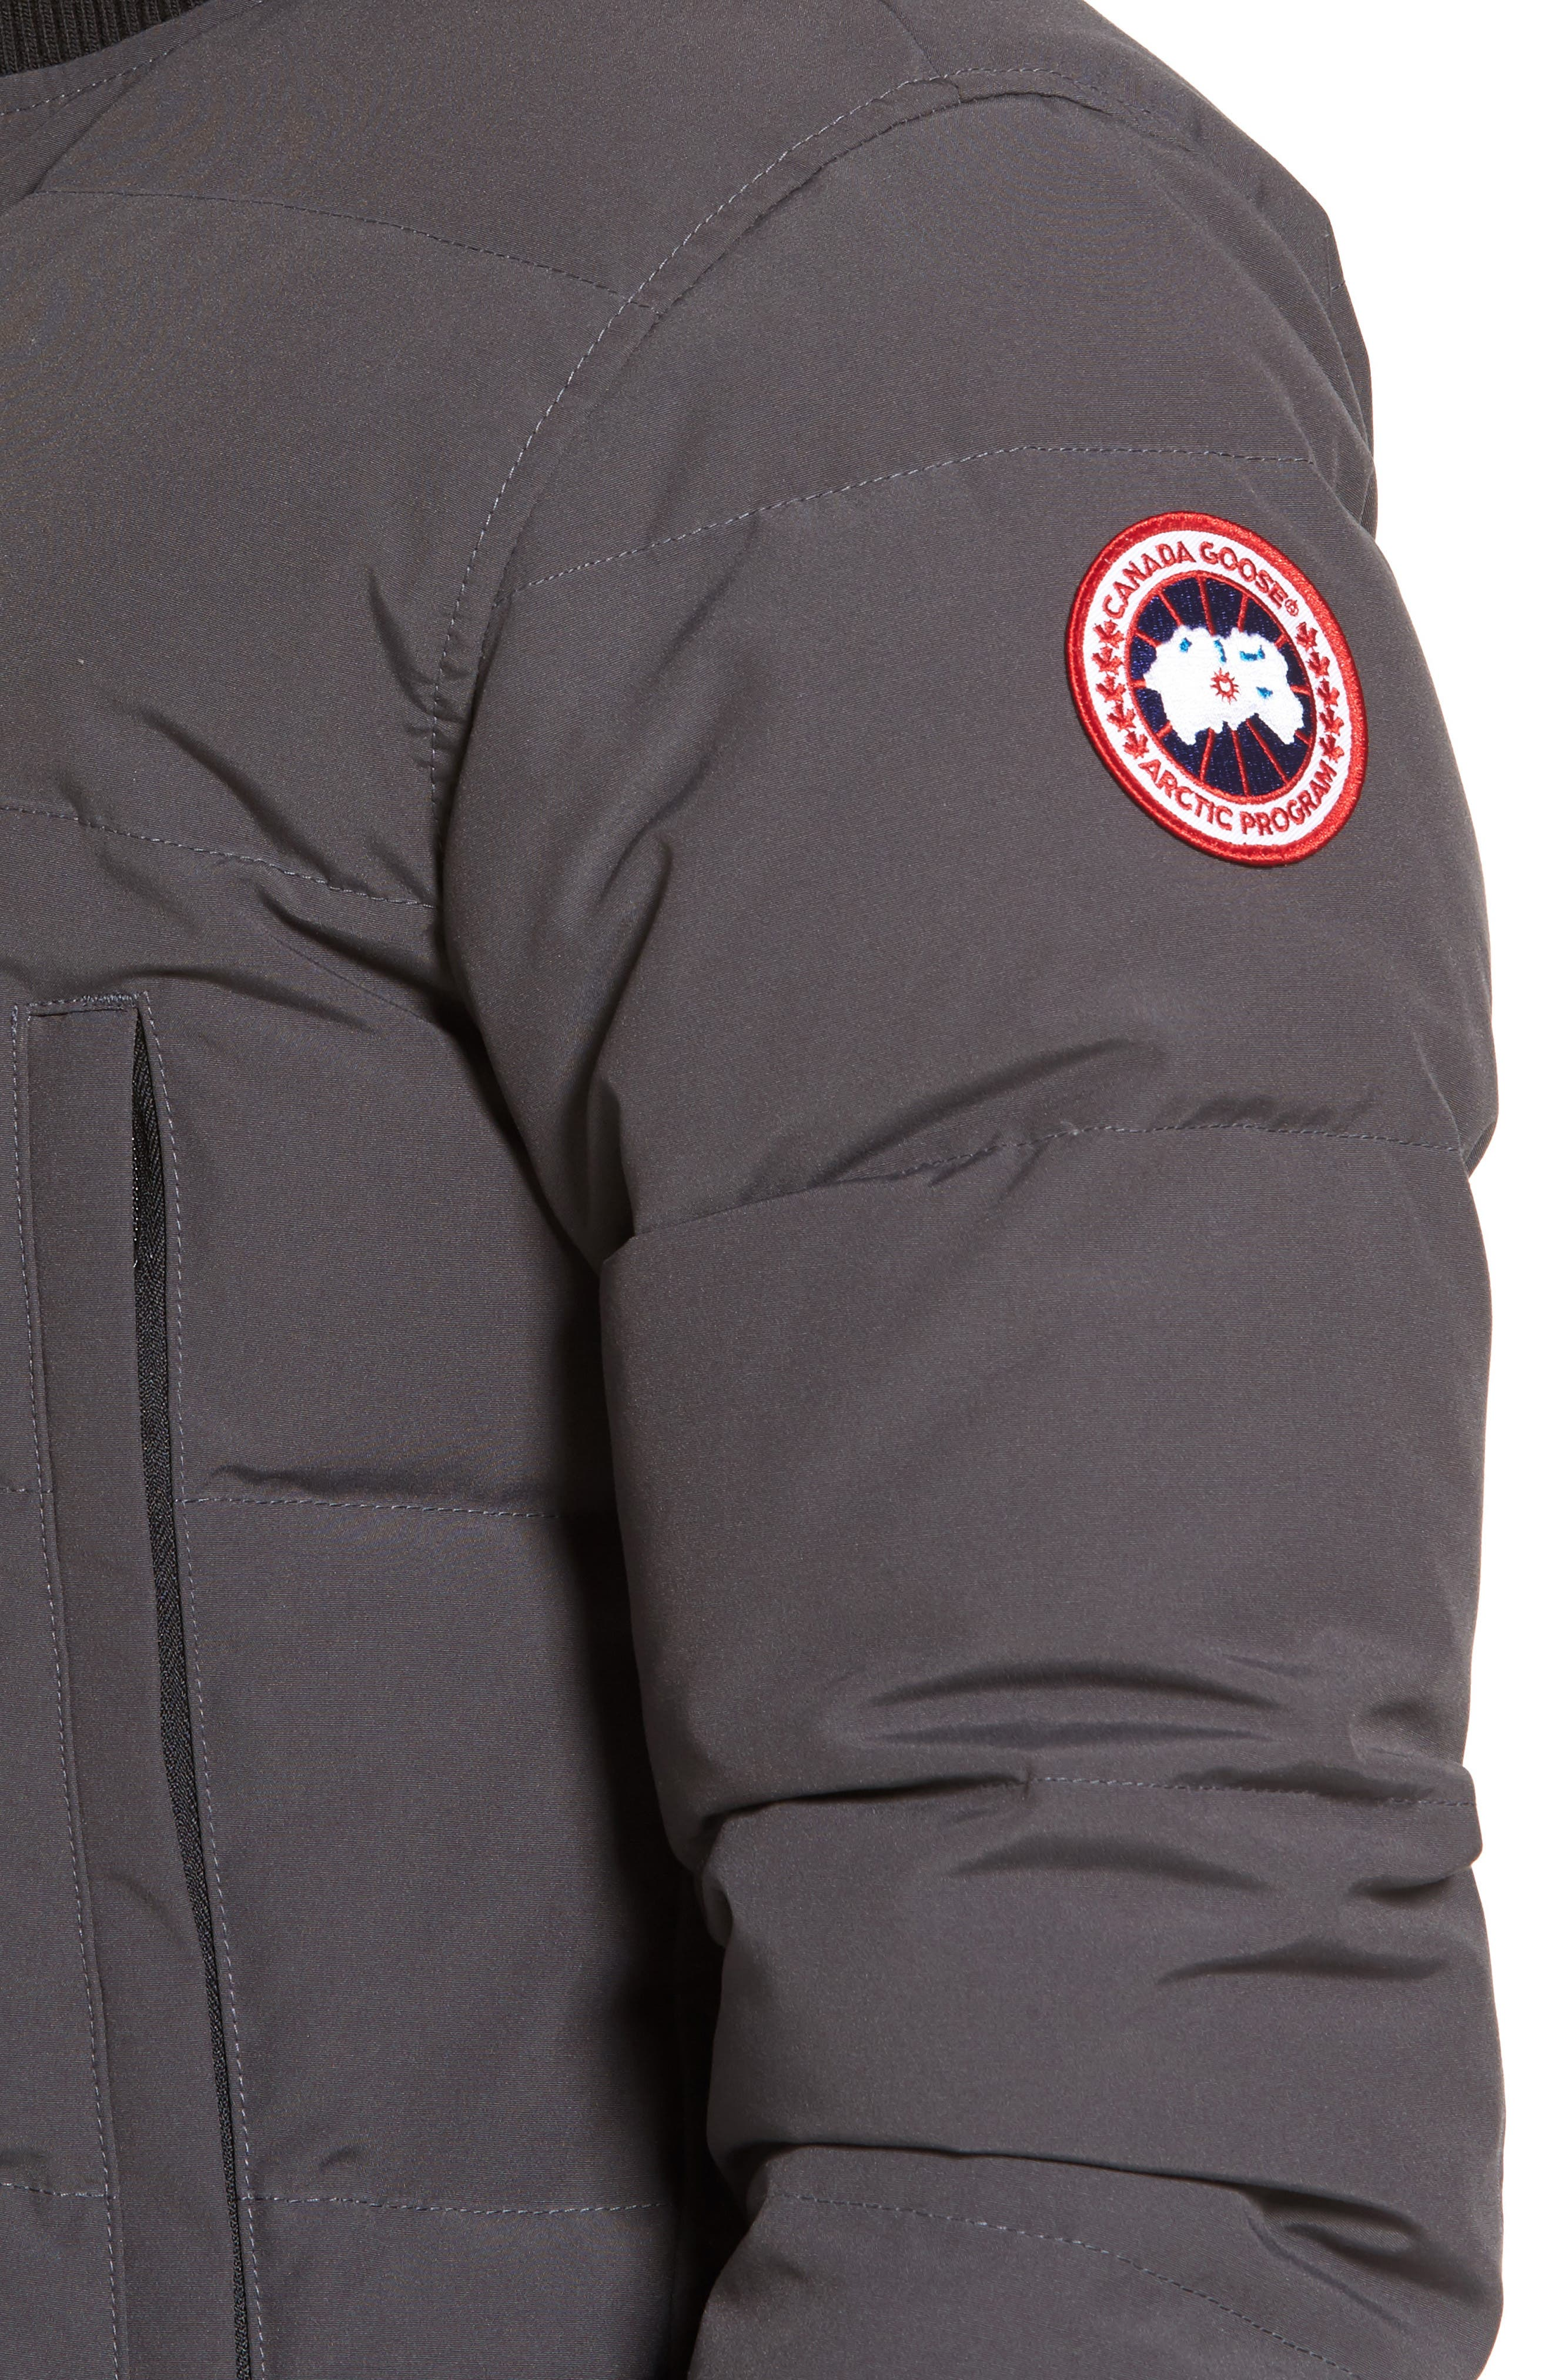 CANADA GOOSE, 'Woolford' Slim Fit Down Bomber Jacket, Alternate thumbnail 5, color, GRAPHITE